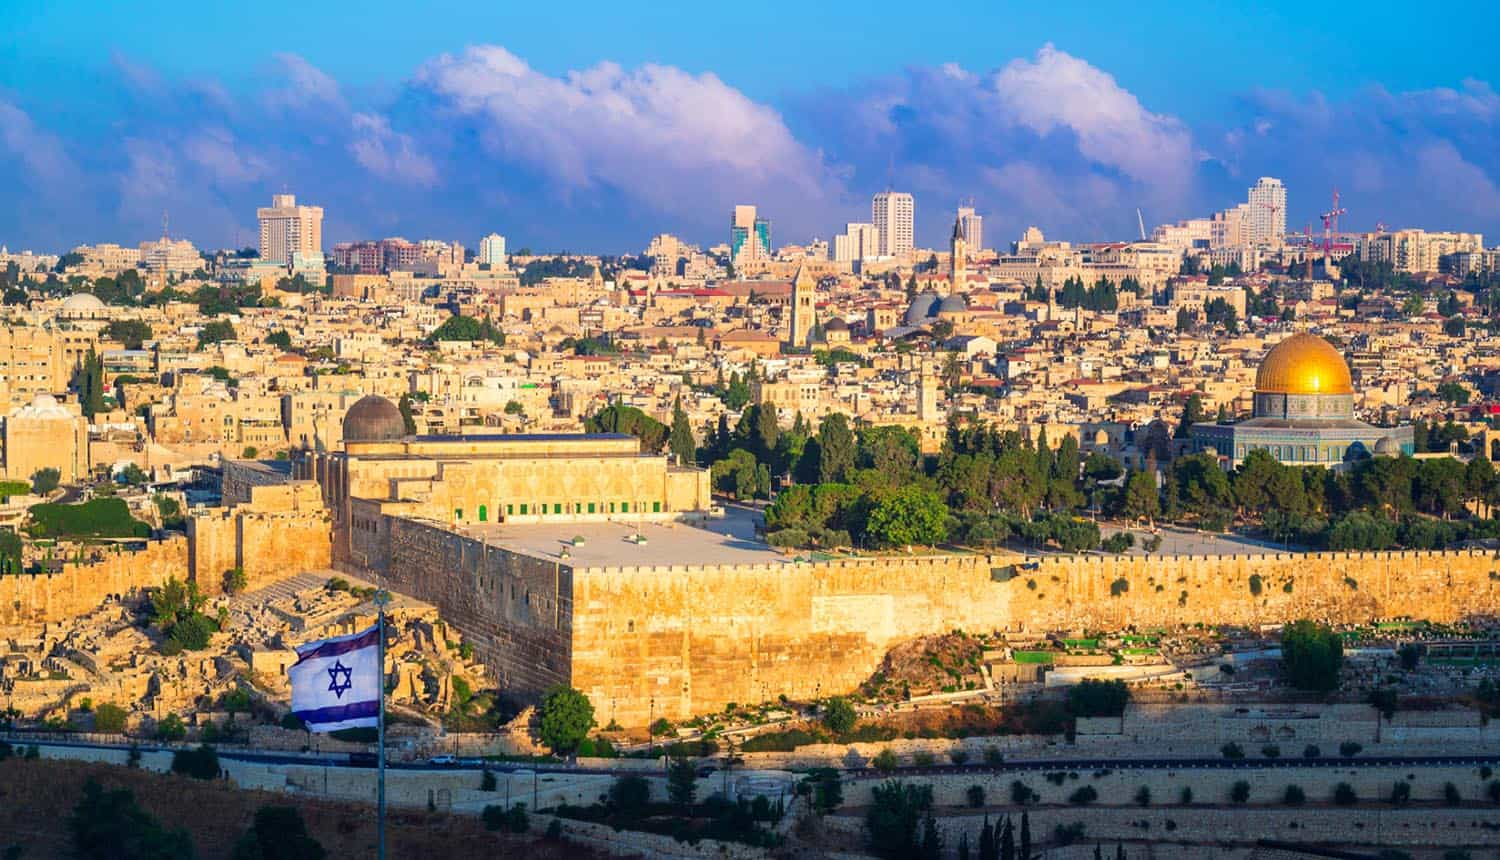 Flag of Israel flying over city showing ransomware gang cyber attack